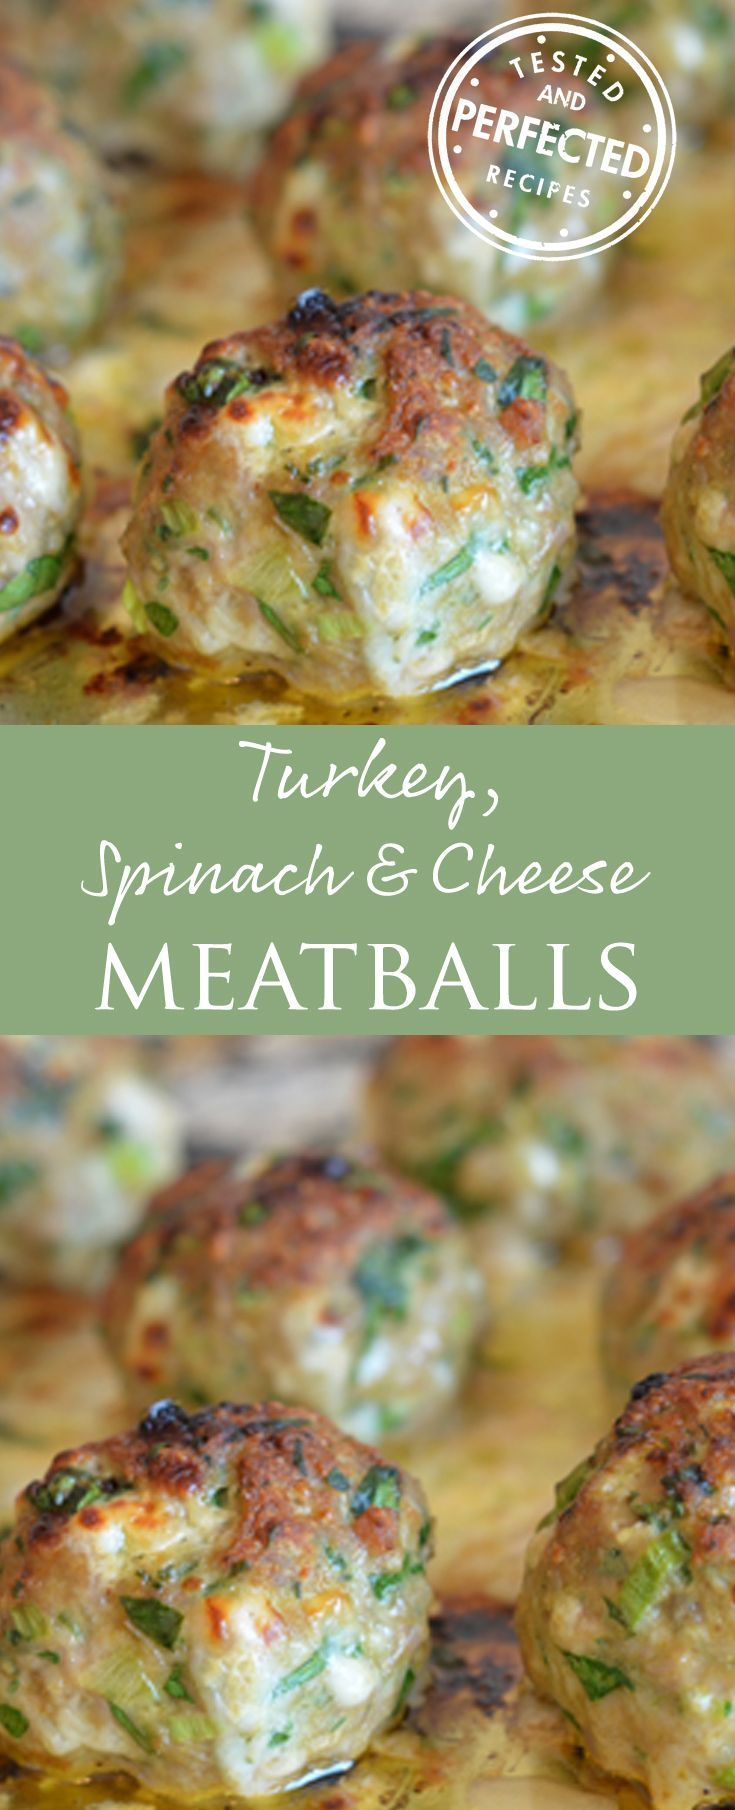 25 best ideas about turkey spinach meatballs on pinterest for Baked pasta with meatballs and spinach